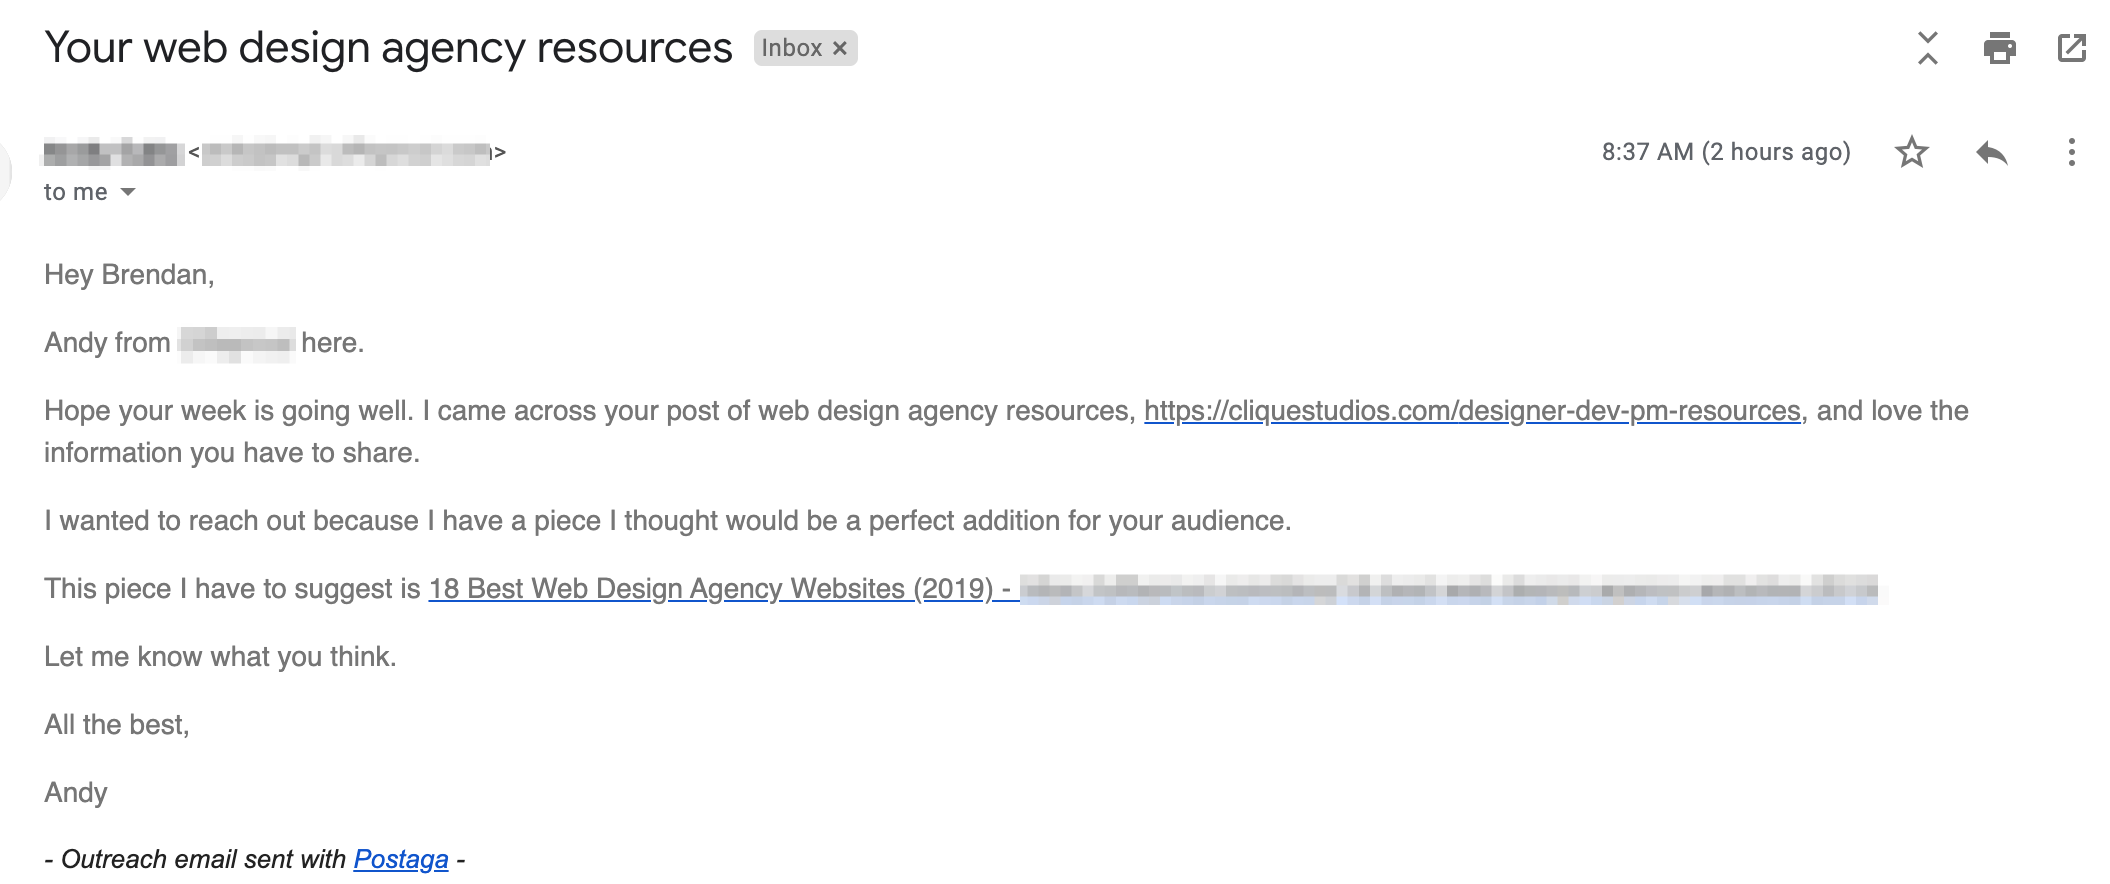 bad outreach email